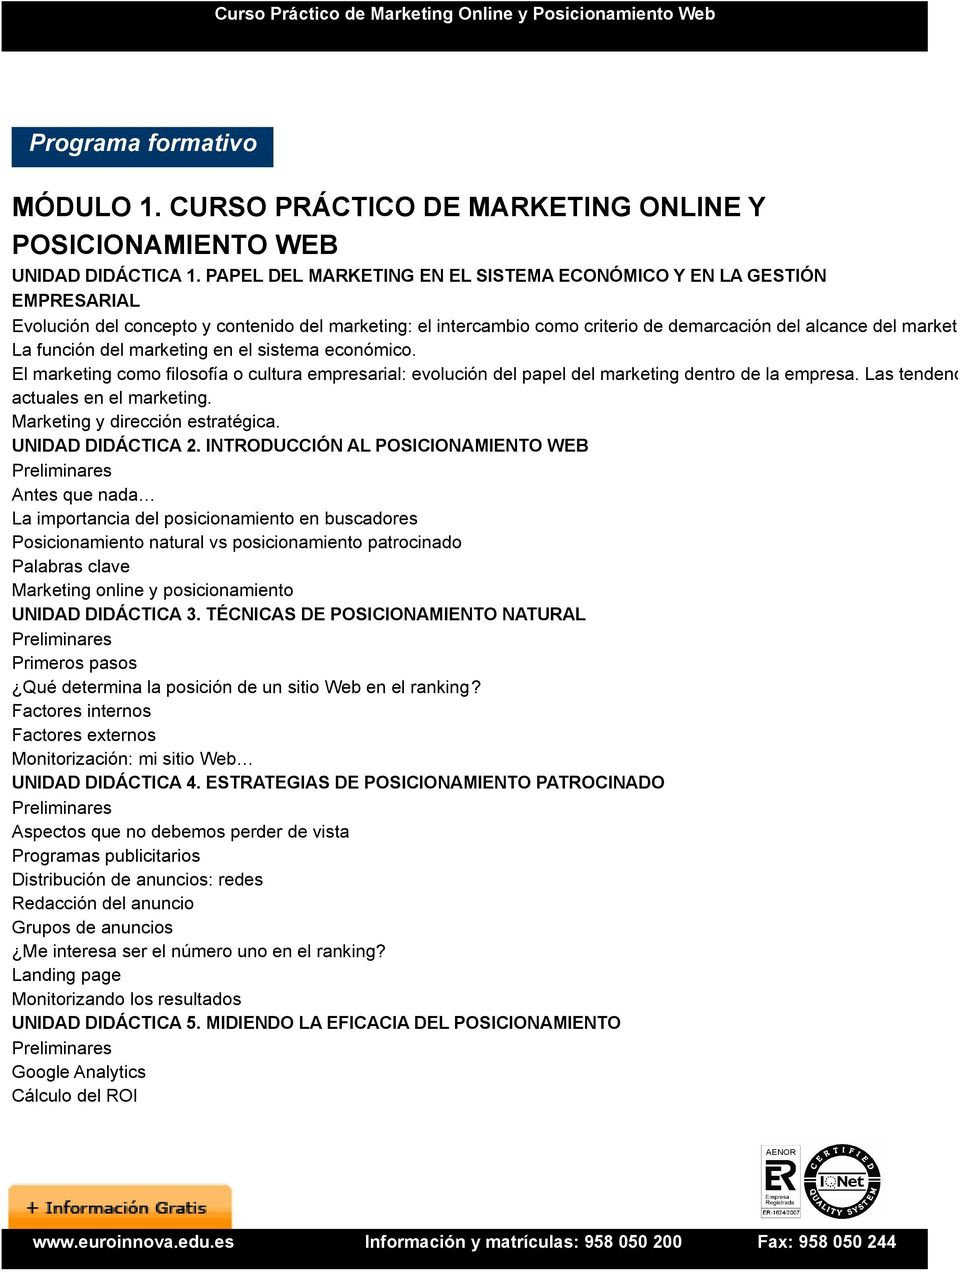 La función del marketing en el sistema económico. El marketing como filosofía o cultura empresarial: evolución del papel del marketing dentro de la empresa. Las tendencias actuales en el marketing.